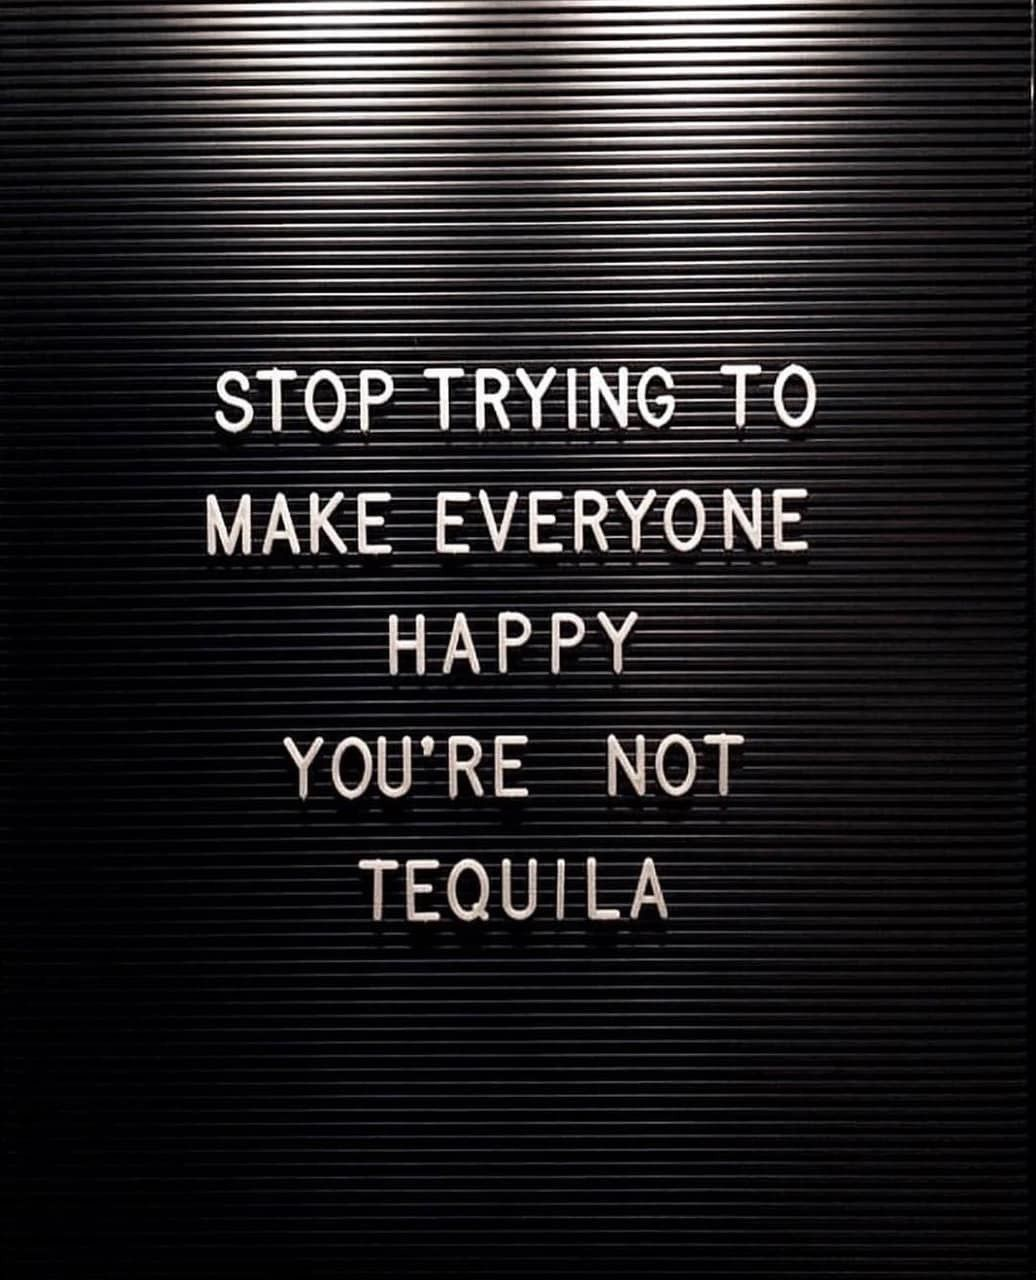 Stop Trying To Make Everyone Happy, You're Not Tequila